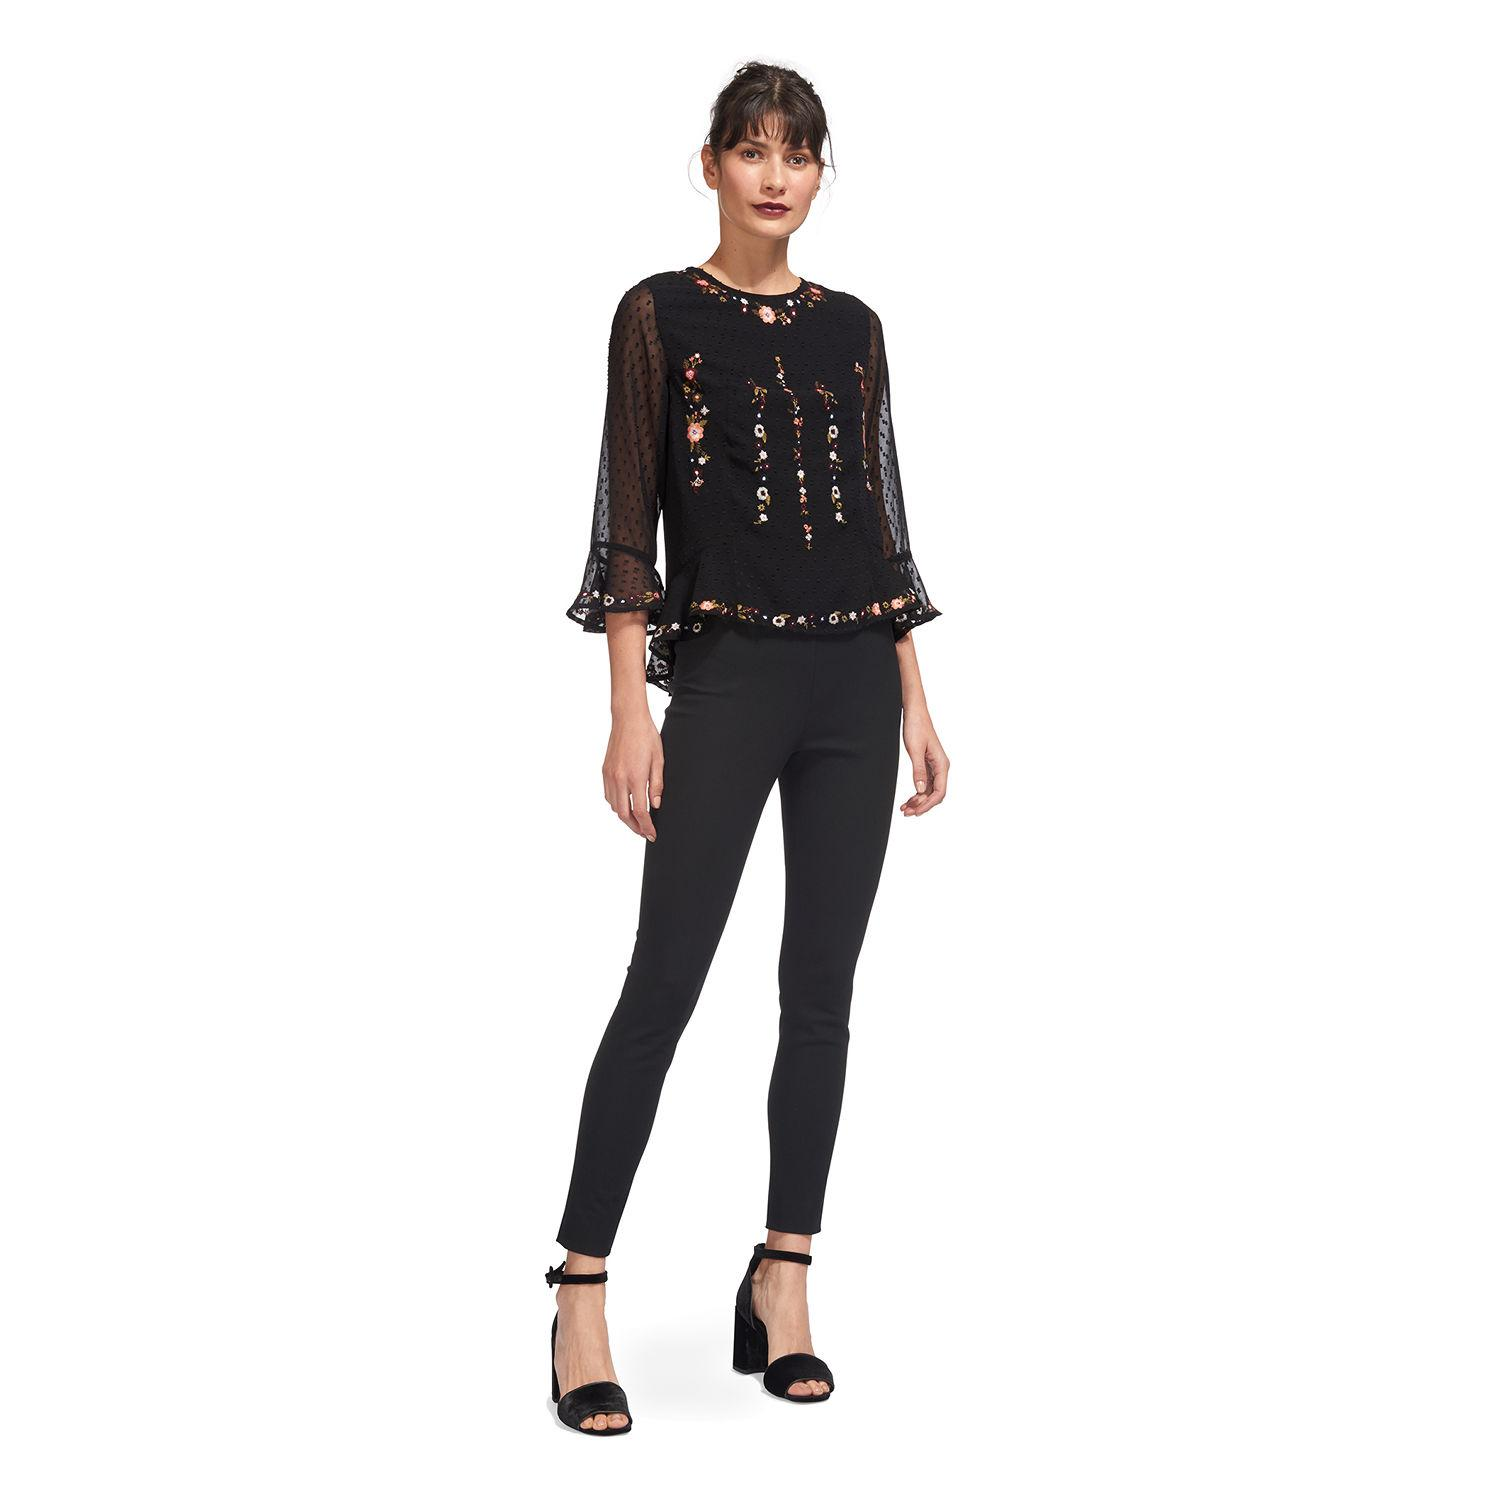 cfd575f9682f83 Lyst - Whistles Multi Flower Embroidered Top in Black - Save 83%